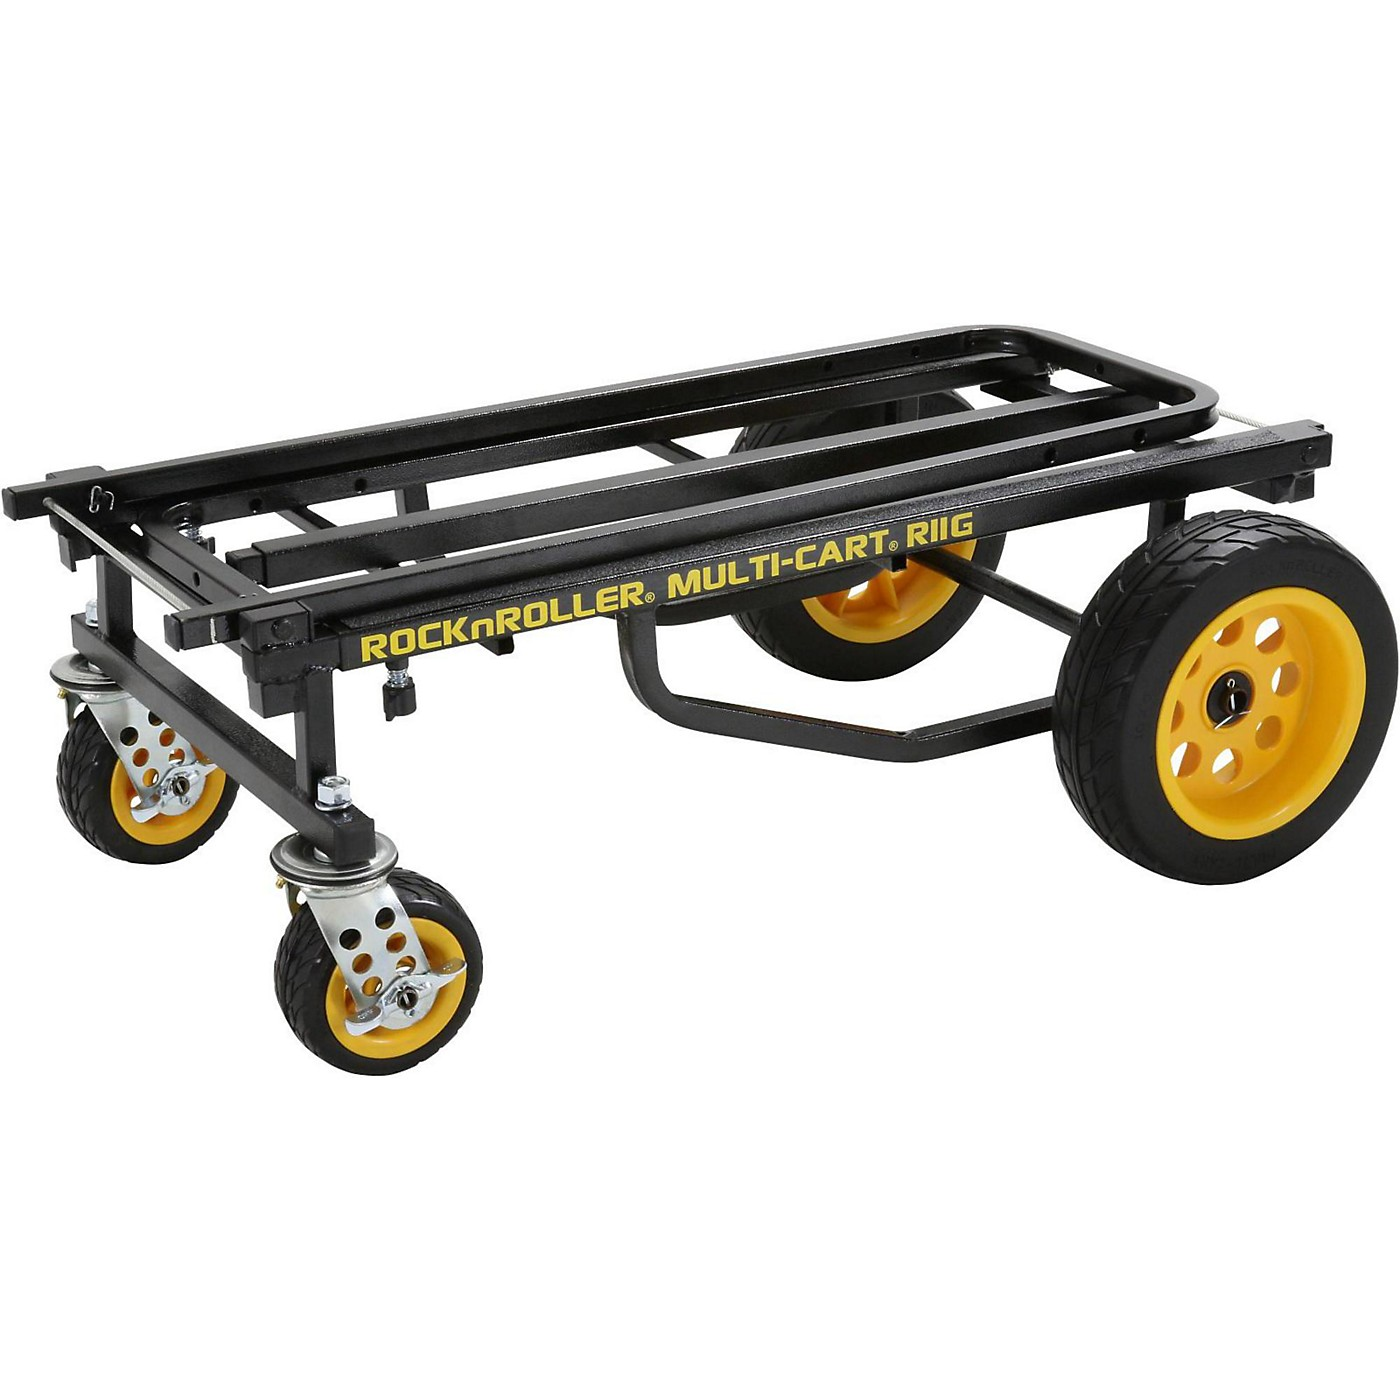 Rock N Roller R11G All-Terrain 8-in-1 Multi-Cart with Ground Glider Casters thumbnail